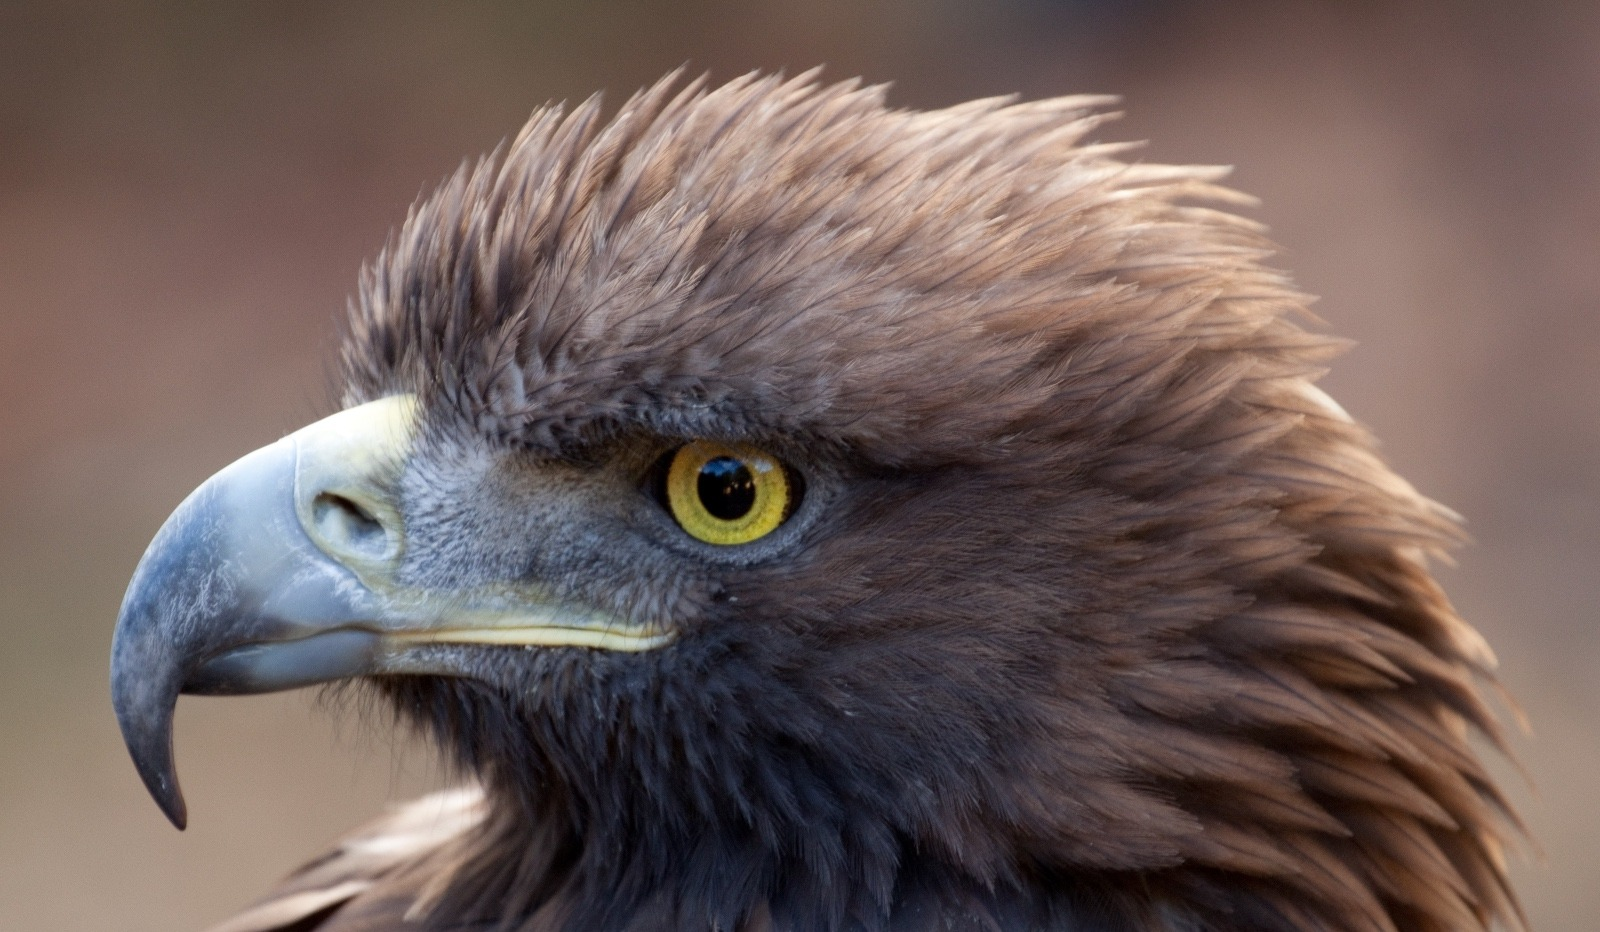 In summer 2018, the Draper has a special exhibit celebrating golden eagles titled Monarch of the Skies. The museum also has a special facility where visitors can see live birds such as eagles, falcons and owls.  Photo courtesy Tony Hisgett/Wikimedia Commons